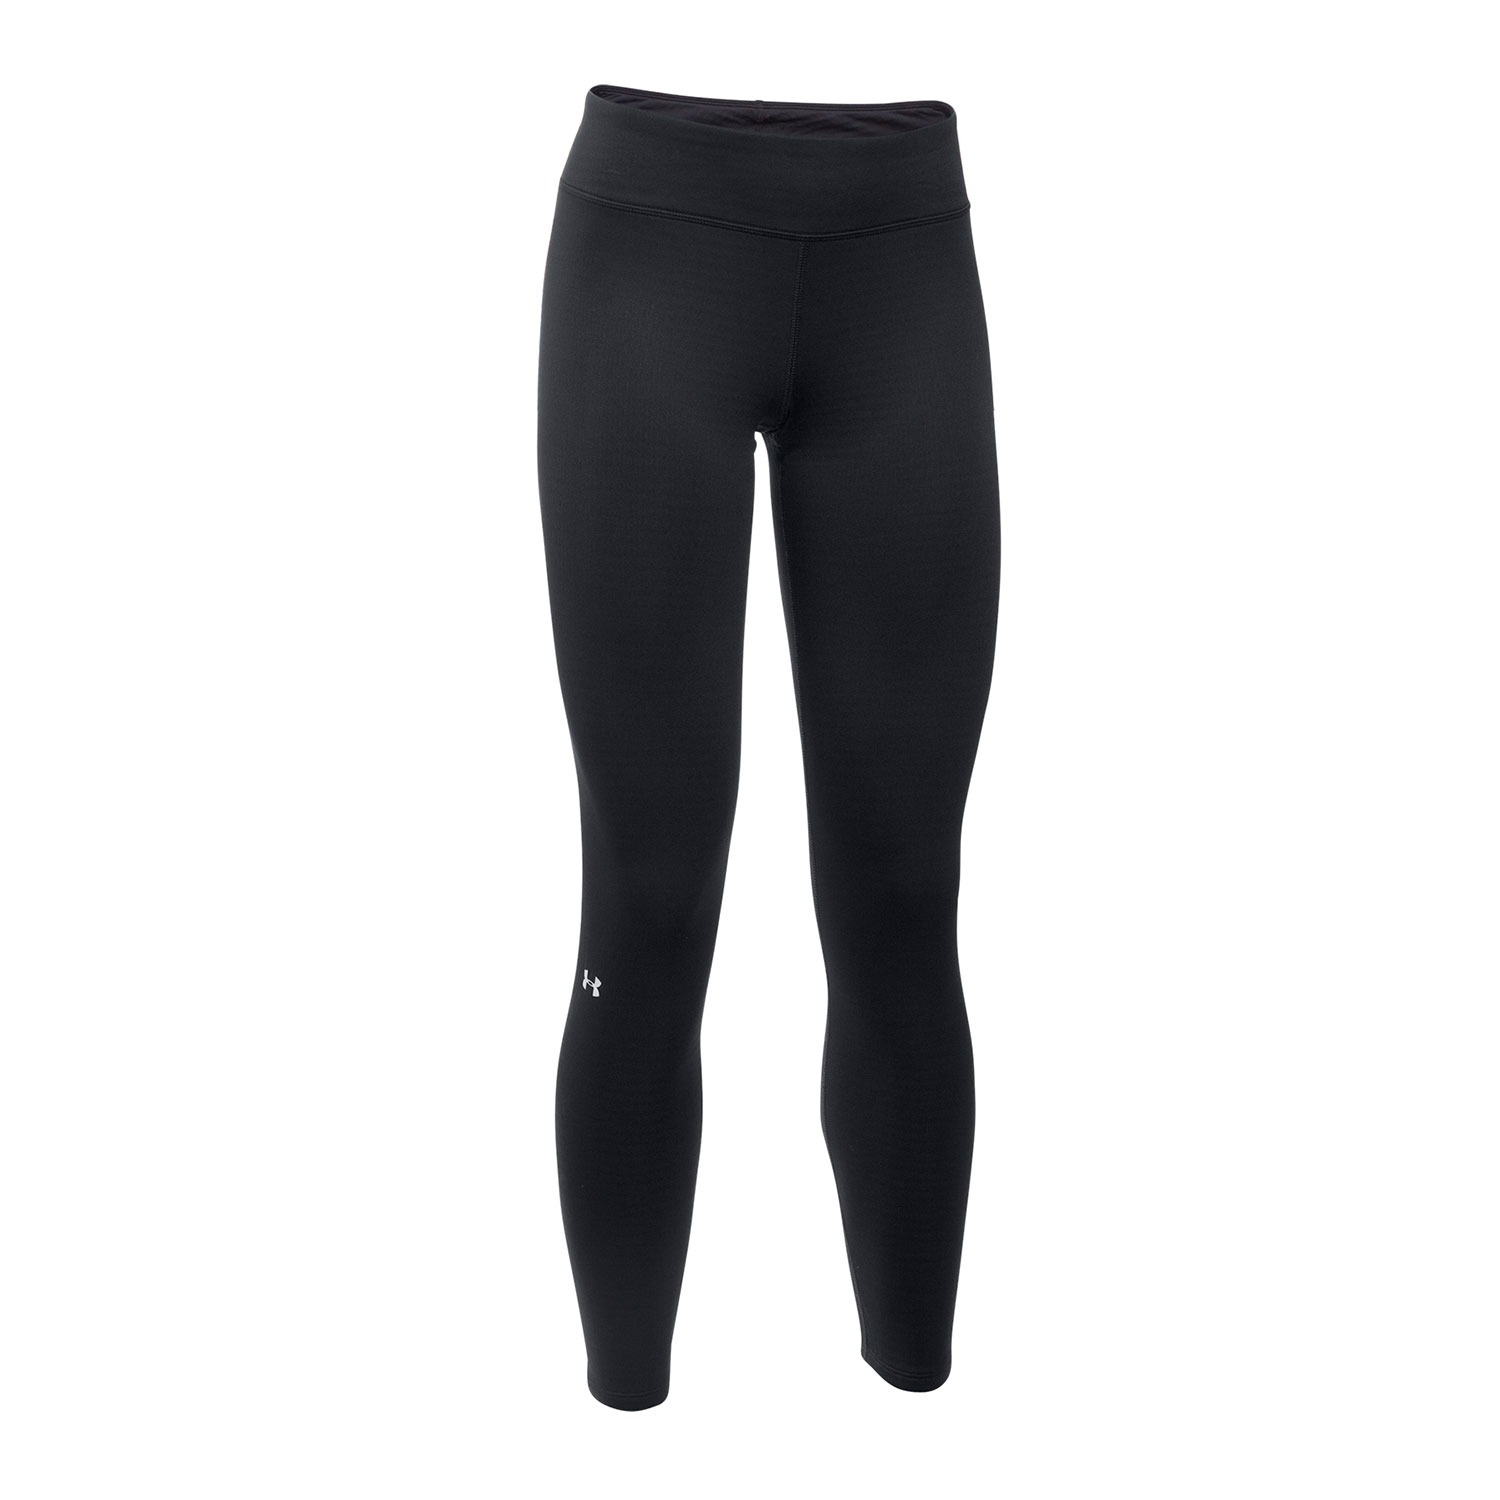 Under Armour Base 1.0 Women's Leggings